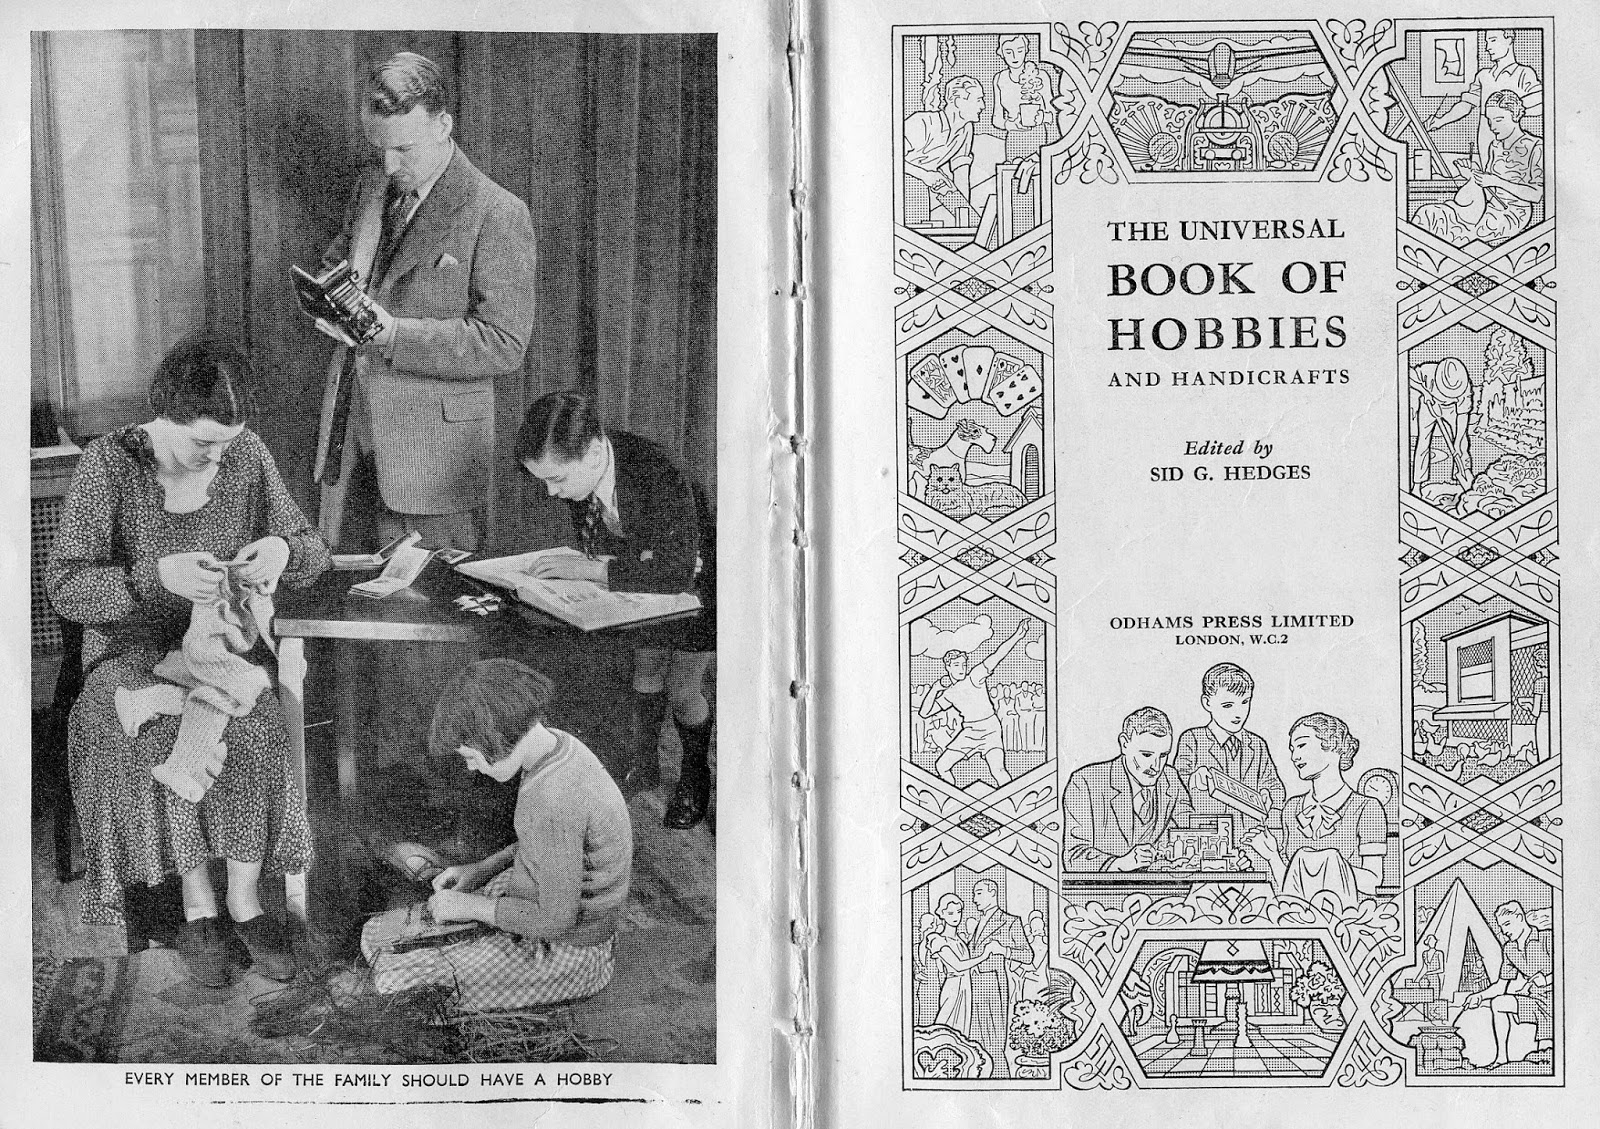 Universal Book of Hobbies and Handicrafts